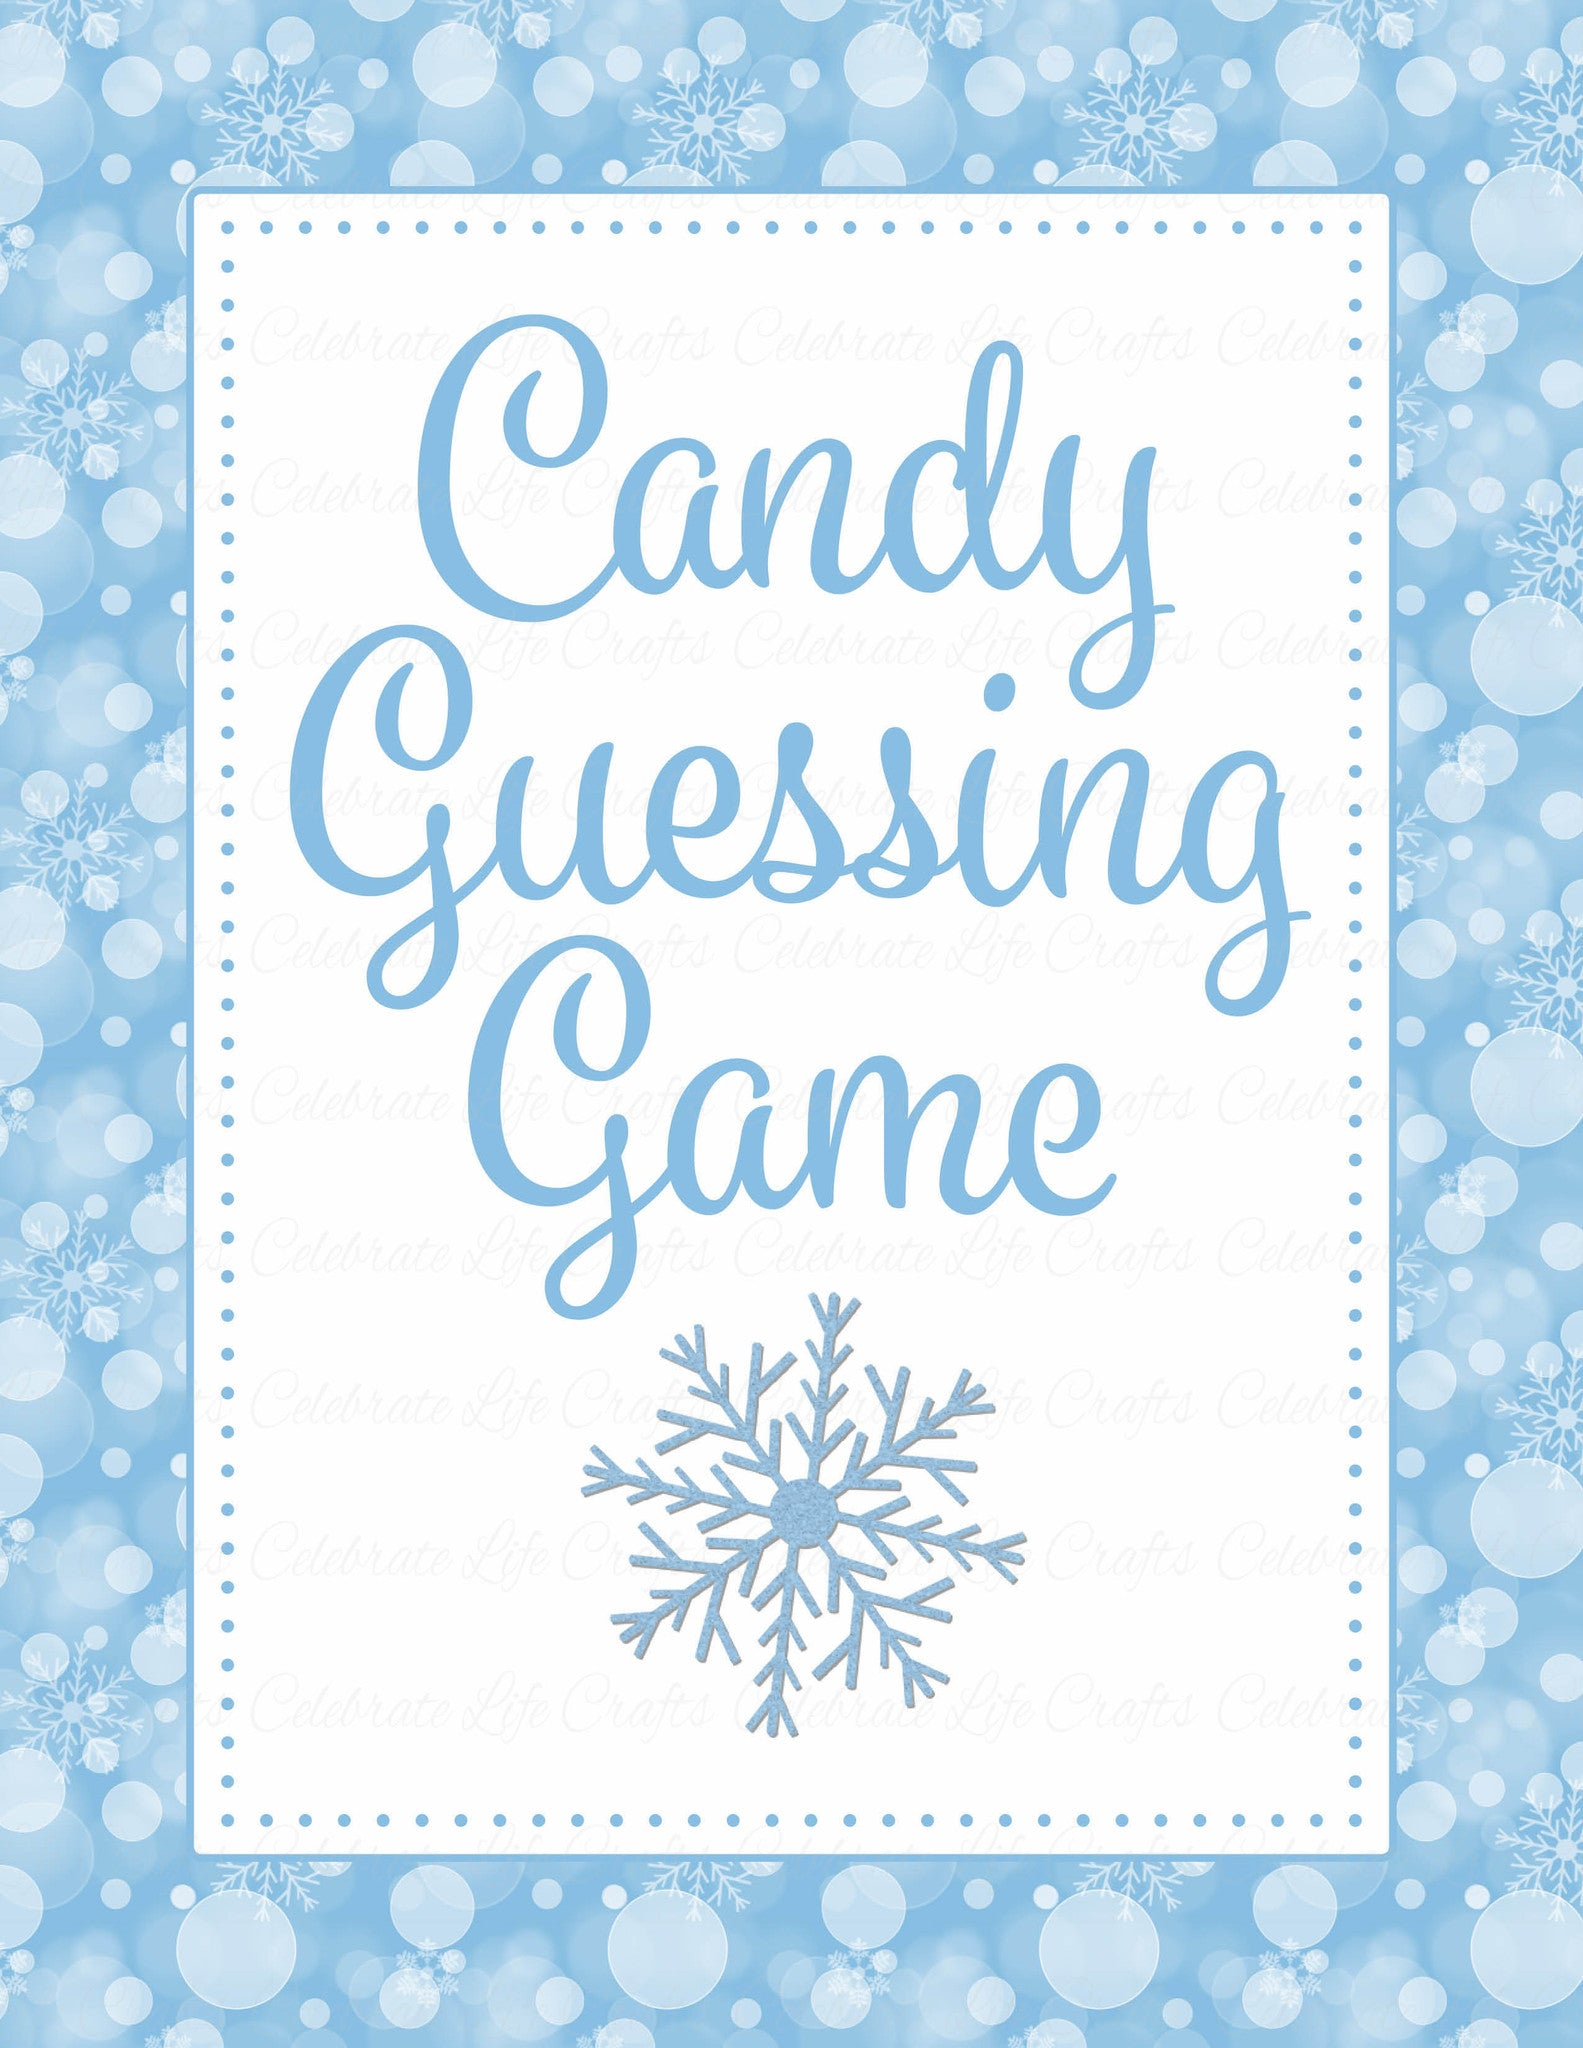 graphic relating to Guess Who Game Printable called Sweet Guessing Match - Printable Obtain - Blue Bokeh Winter season Boy or girl Shower Sport - B22002